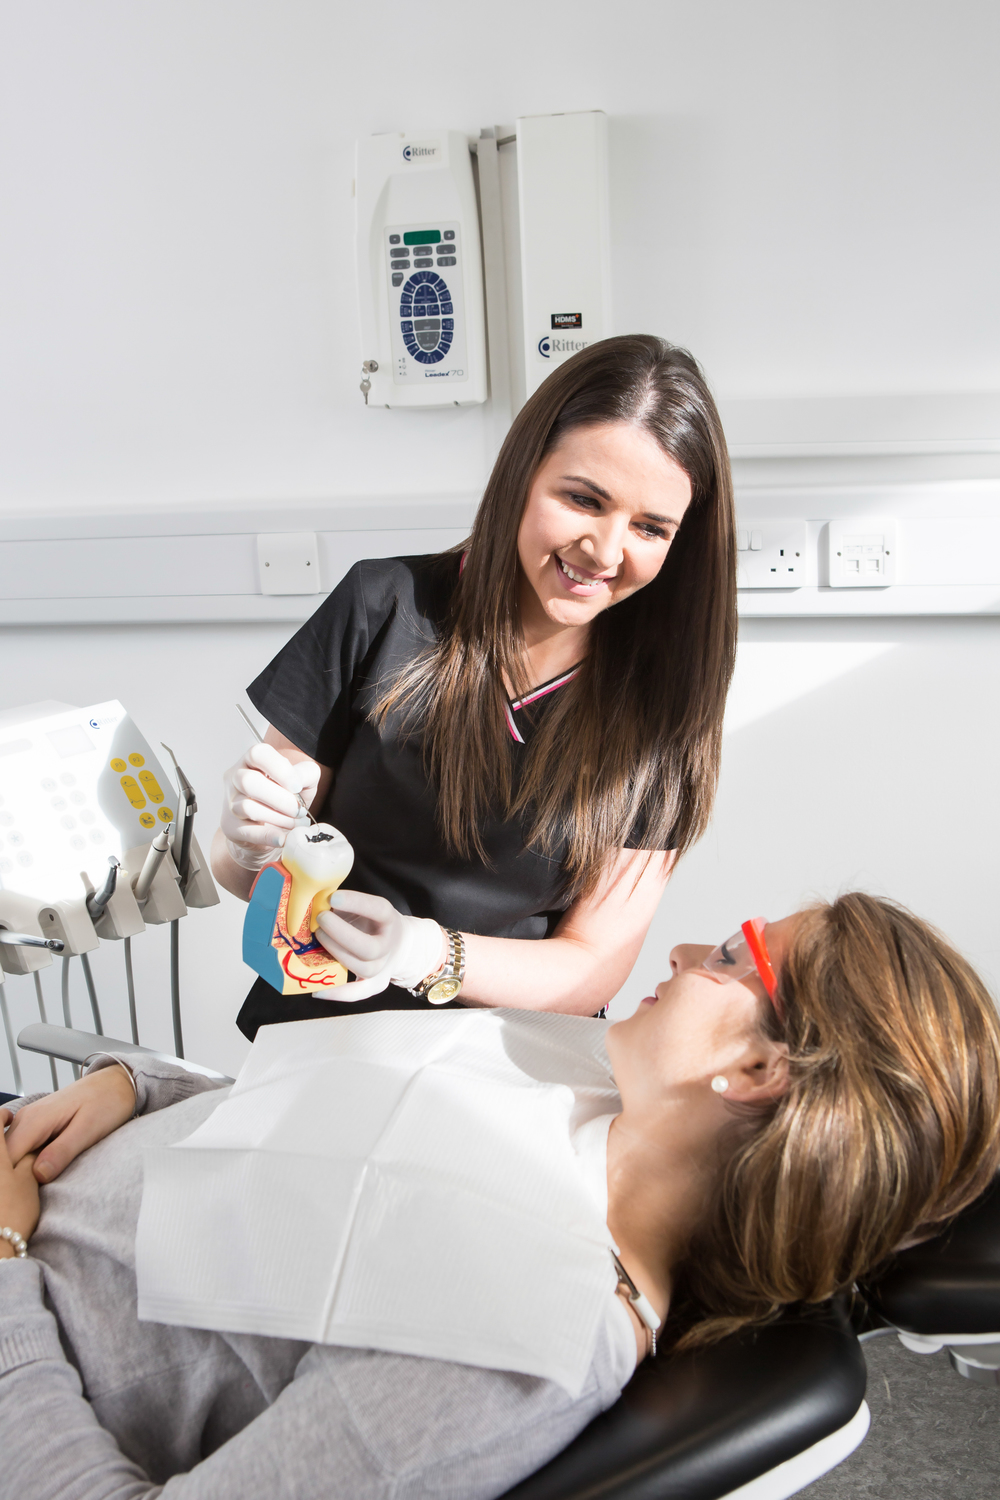 New dental surgery offers available